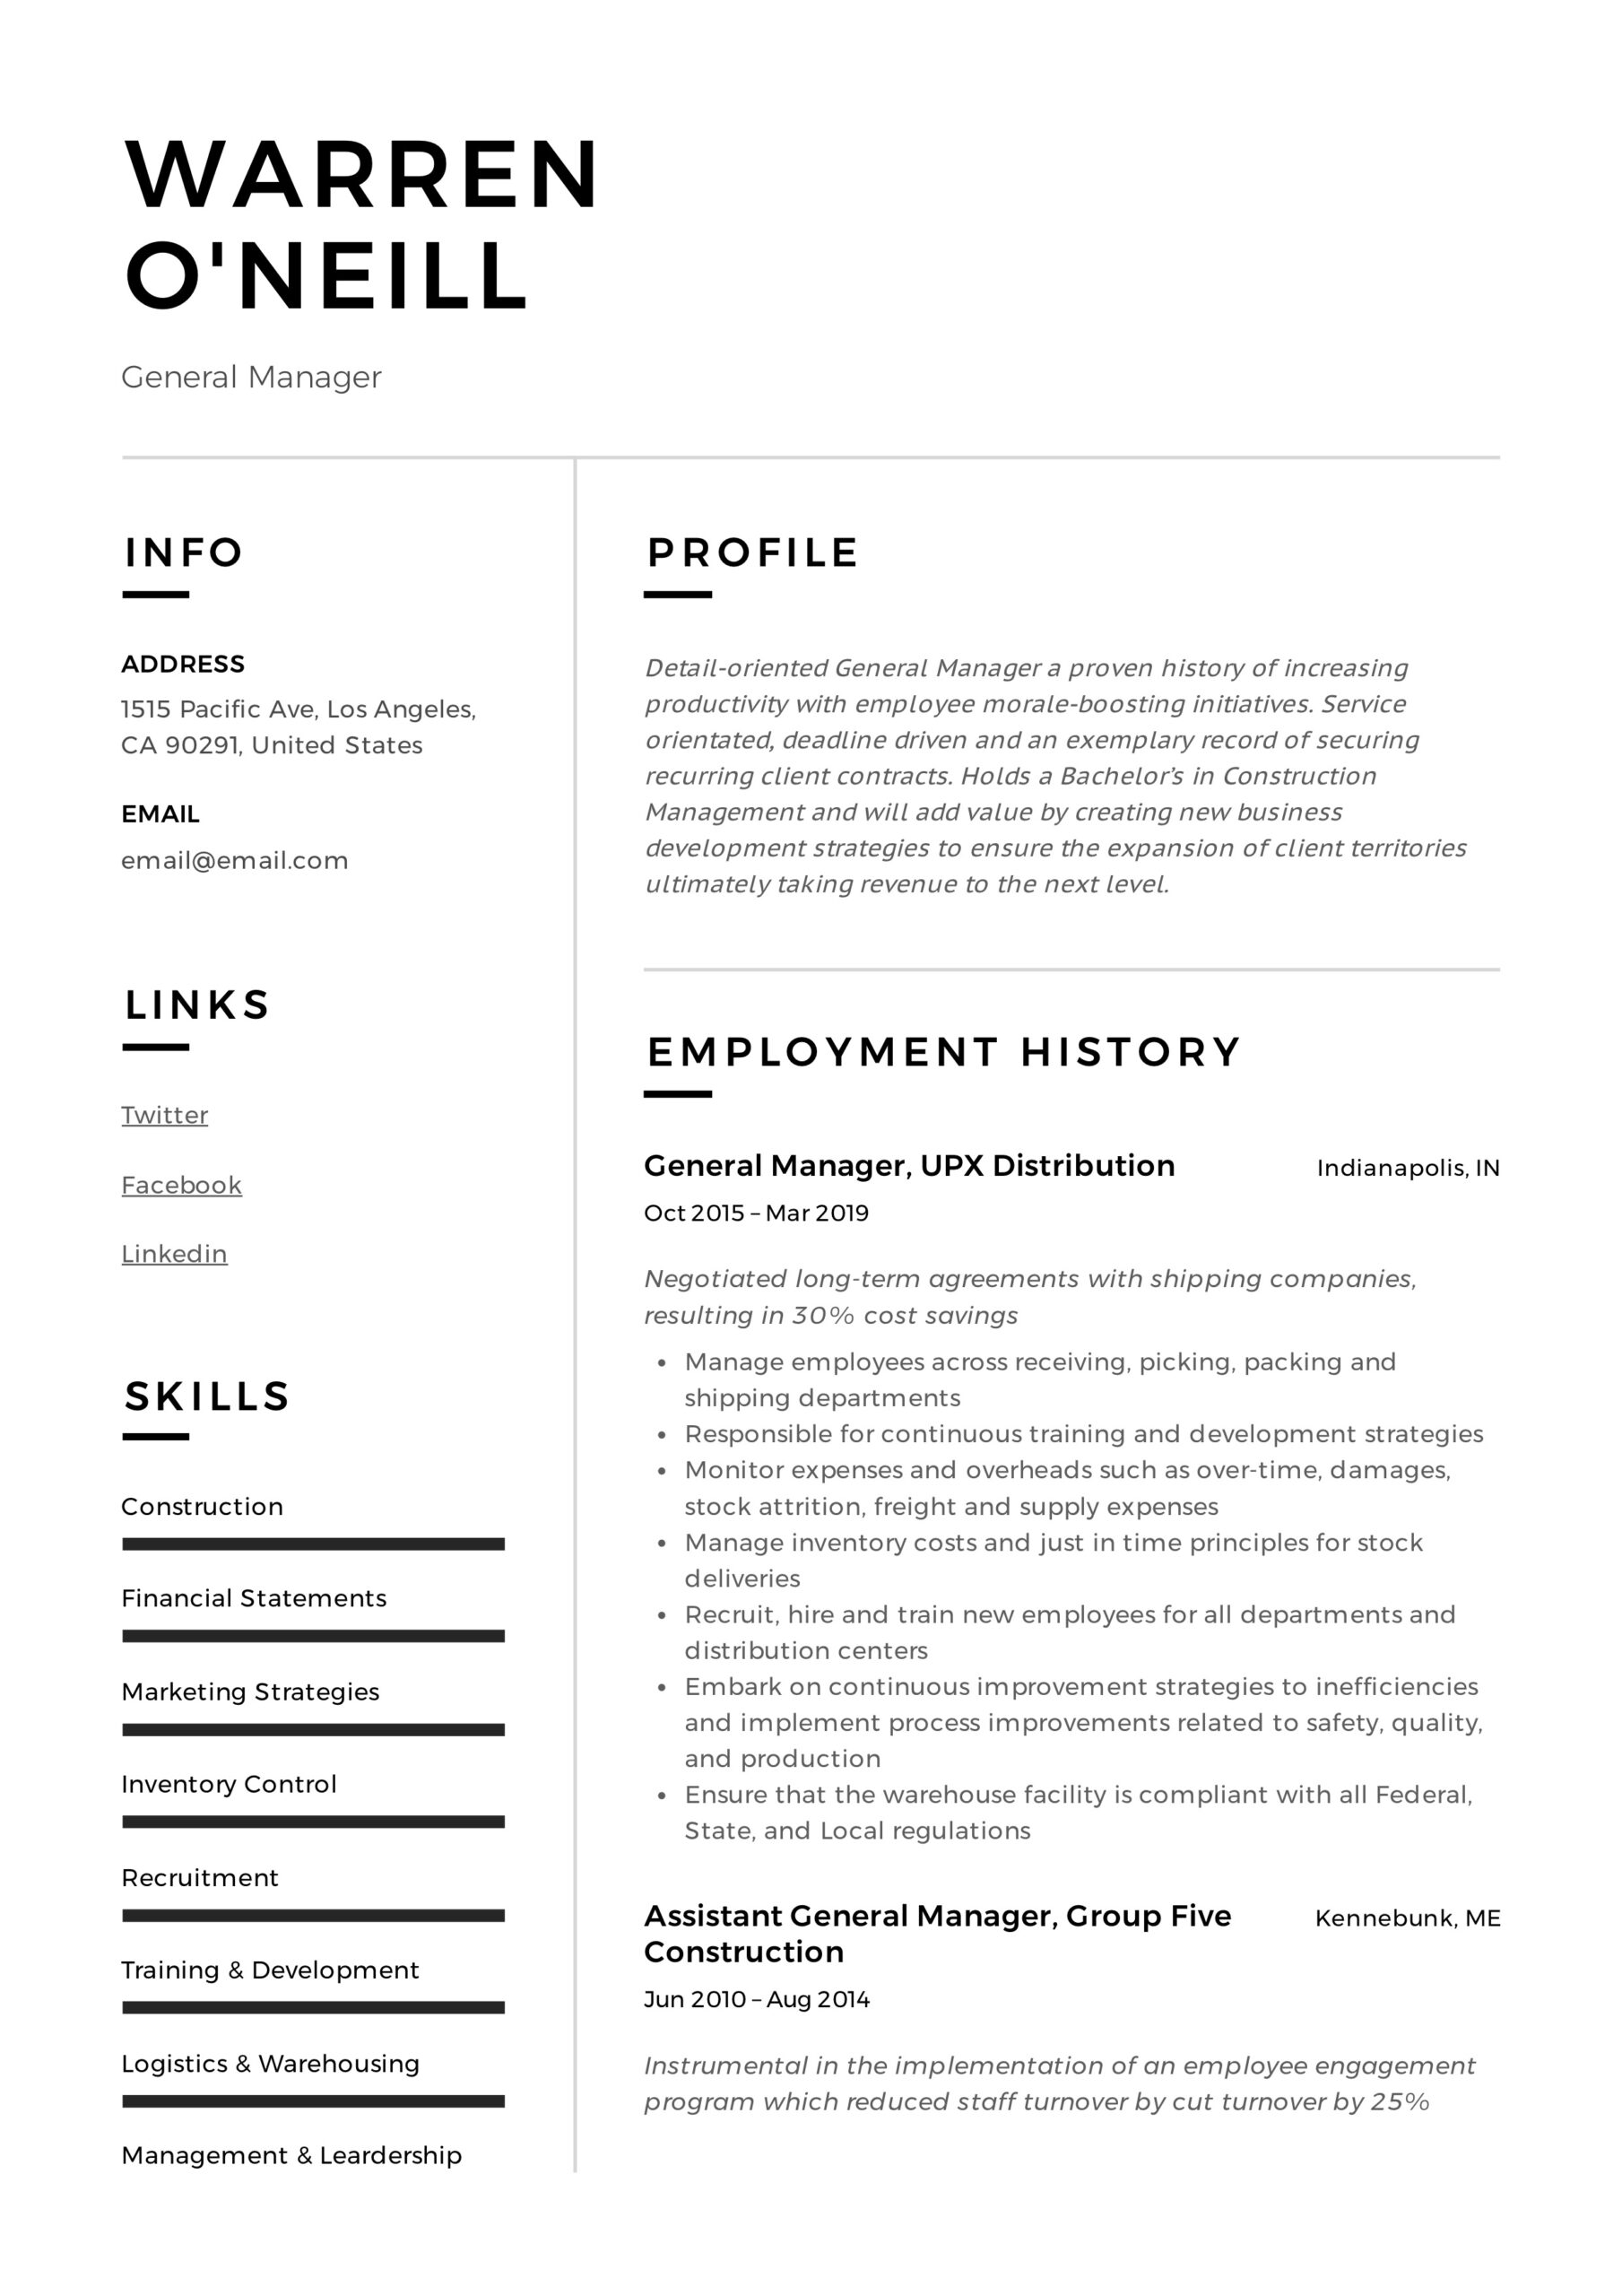 general manager resume writing guide examples pdf neill styles respiratory therapist hbs Resume Writing A General Resume